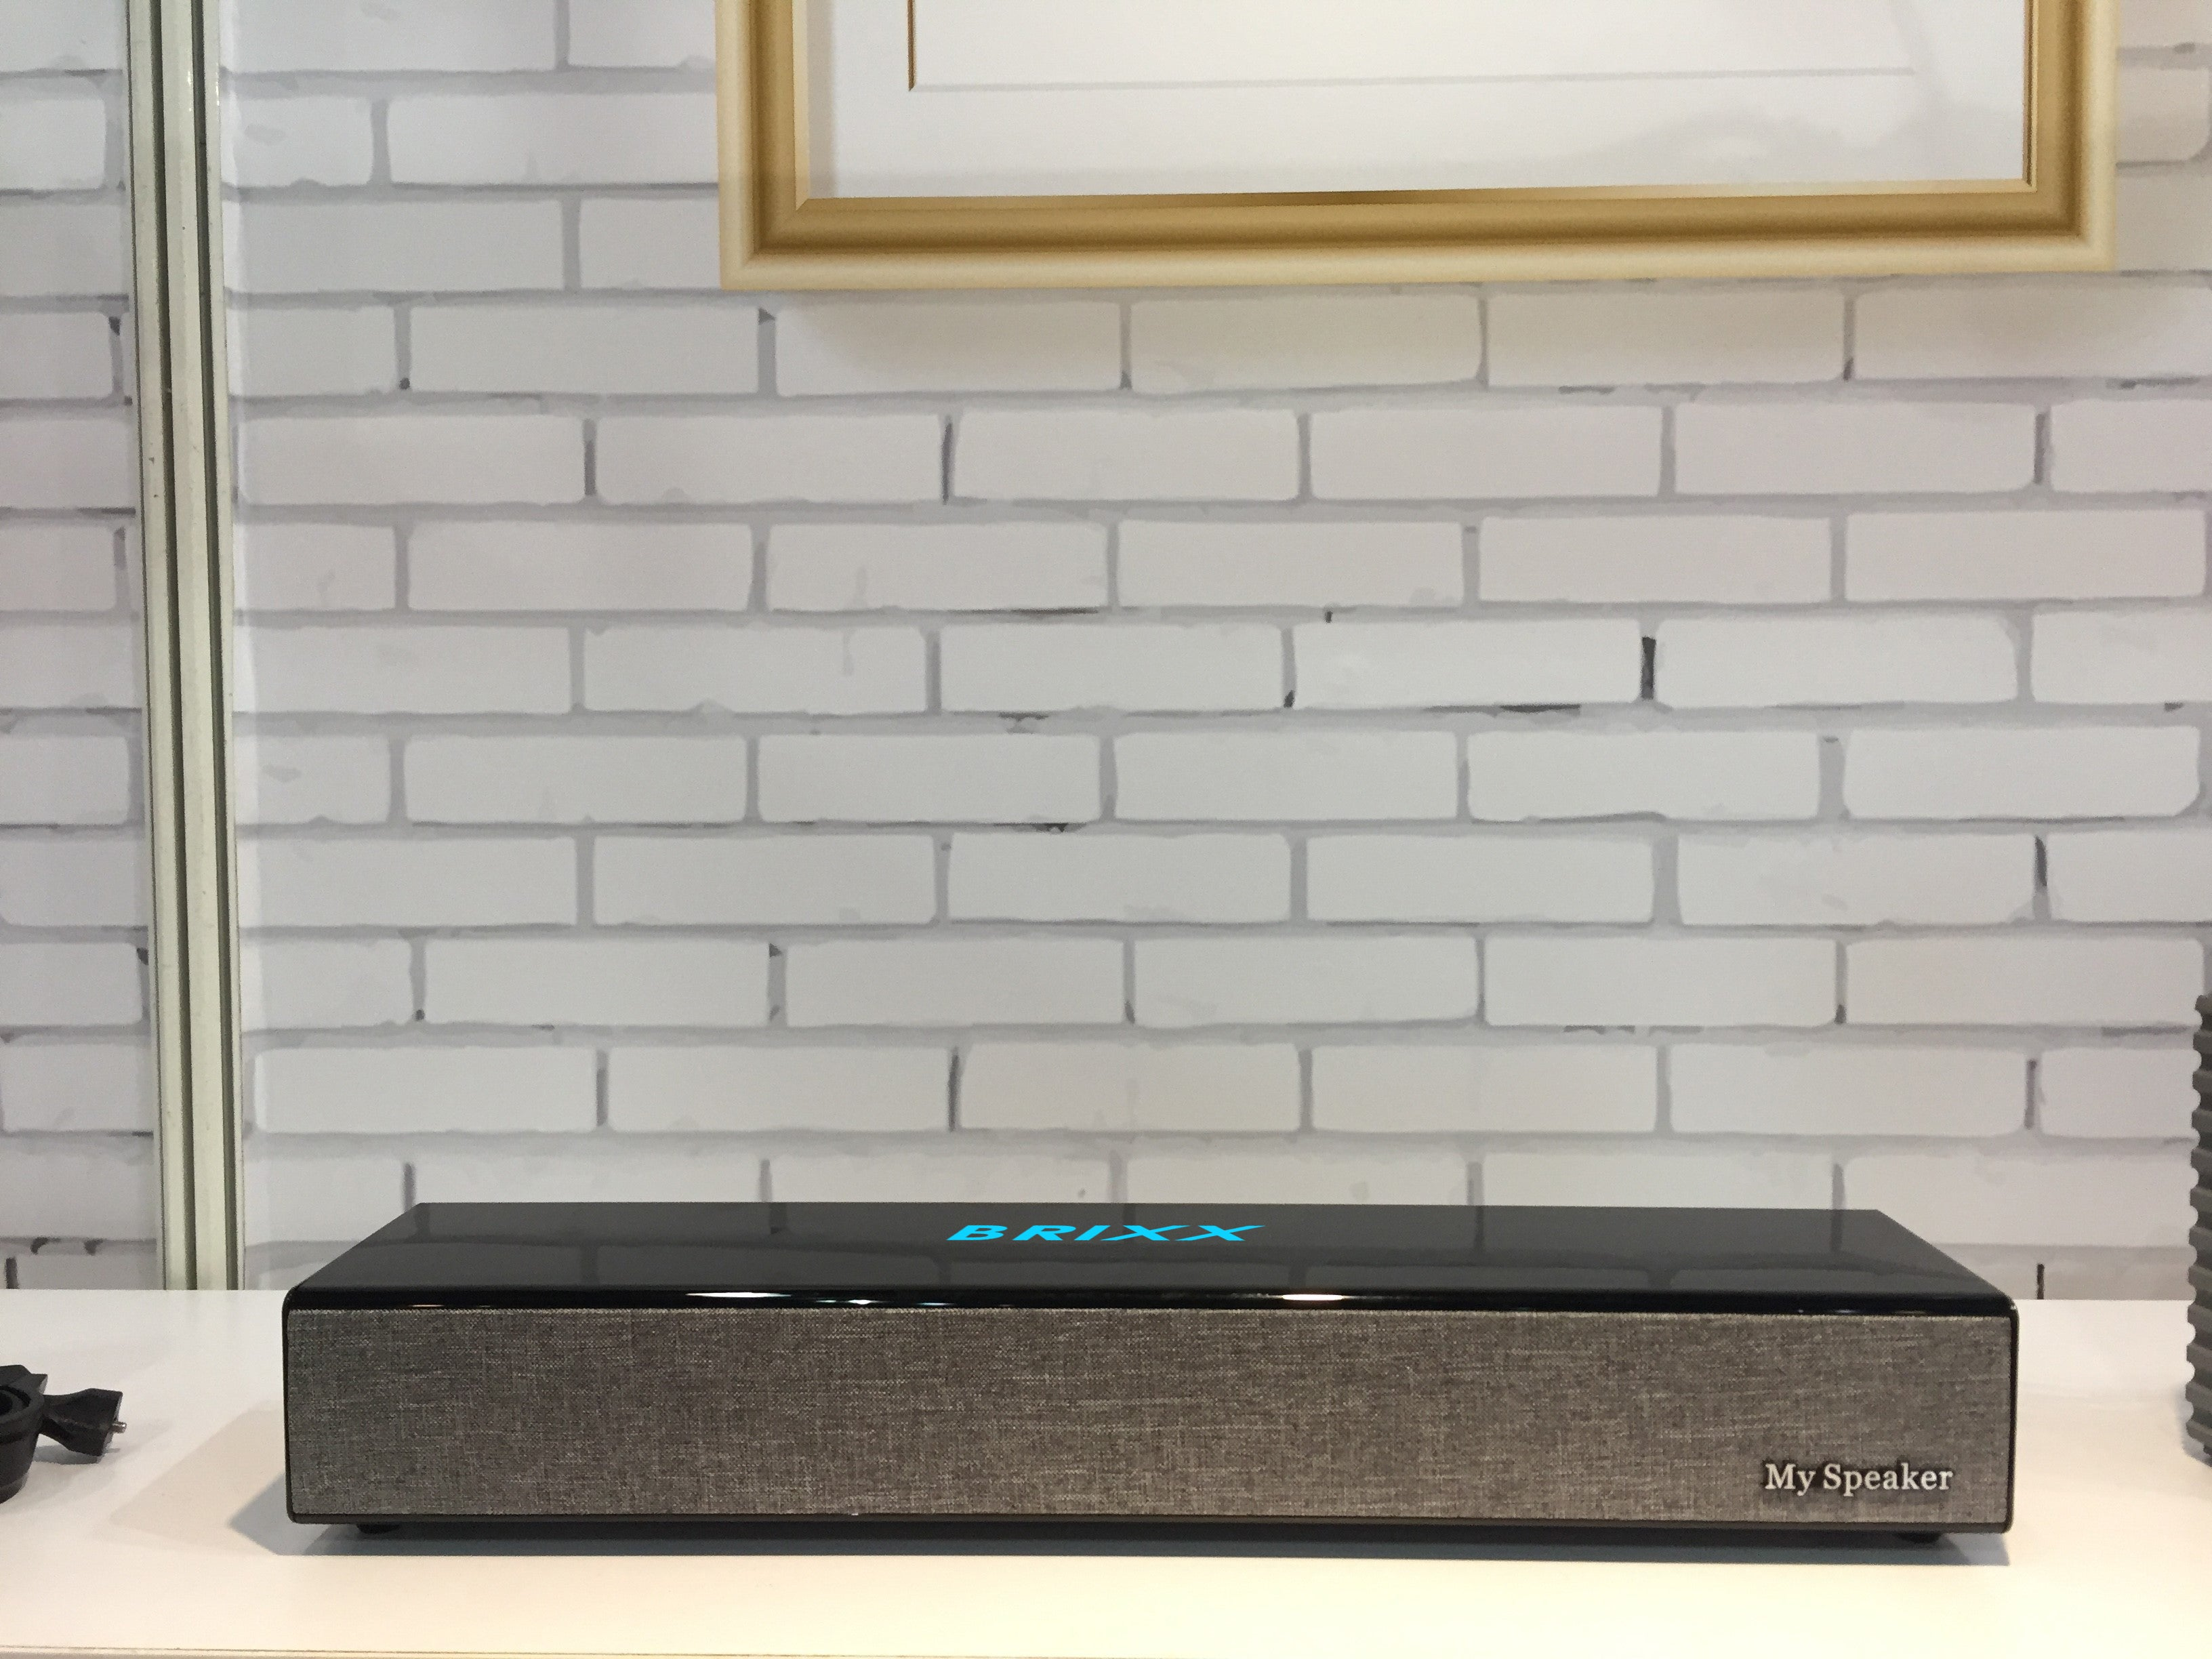 Brixx F020 Soundbar Multimedia Bluetooth Speaker System(Grey & Black)